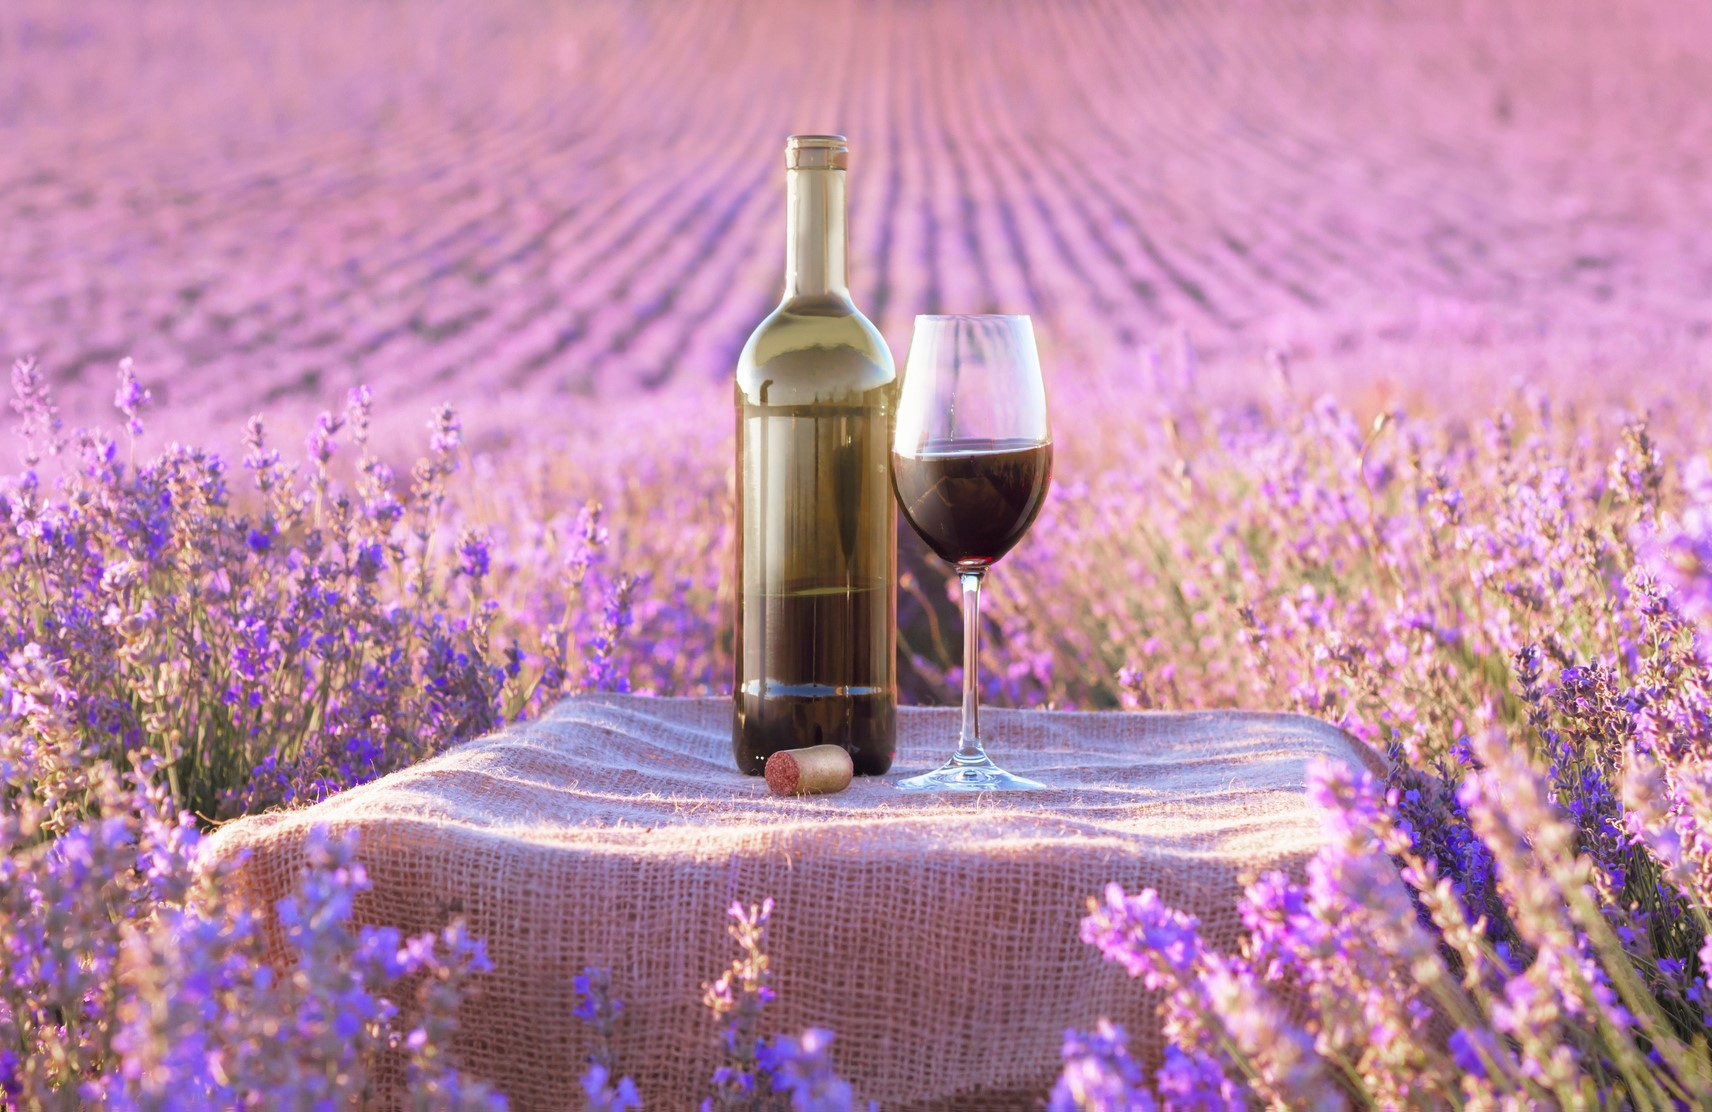 Enjoy the perfect bottle of wine this Spring with this special offer from Firstleaf.